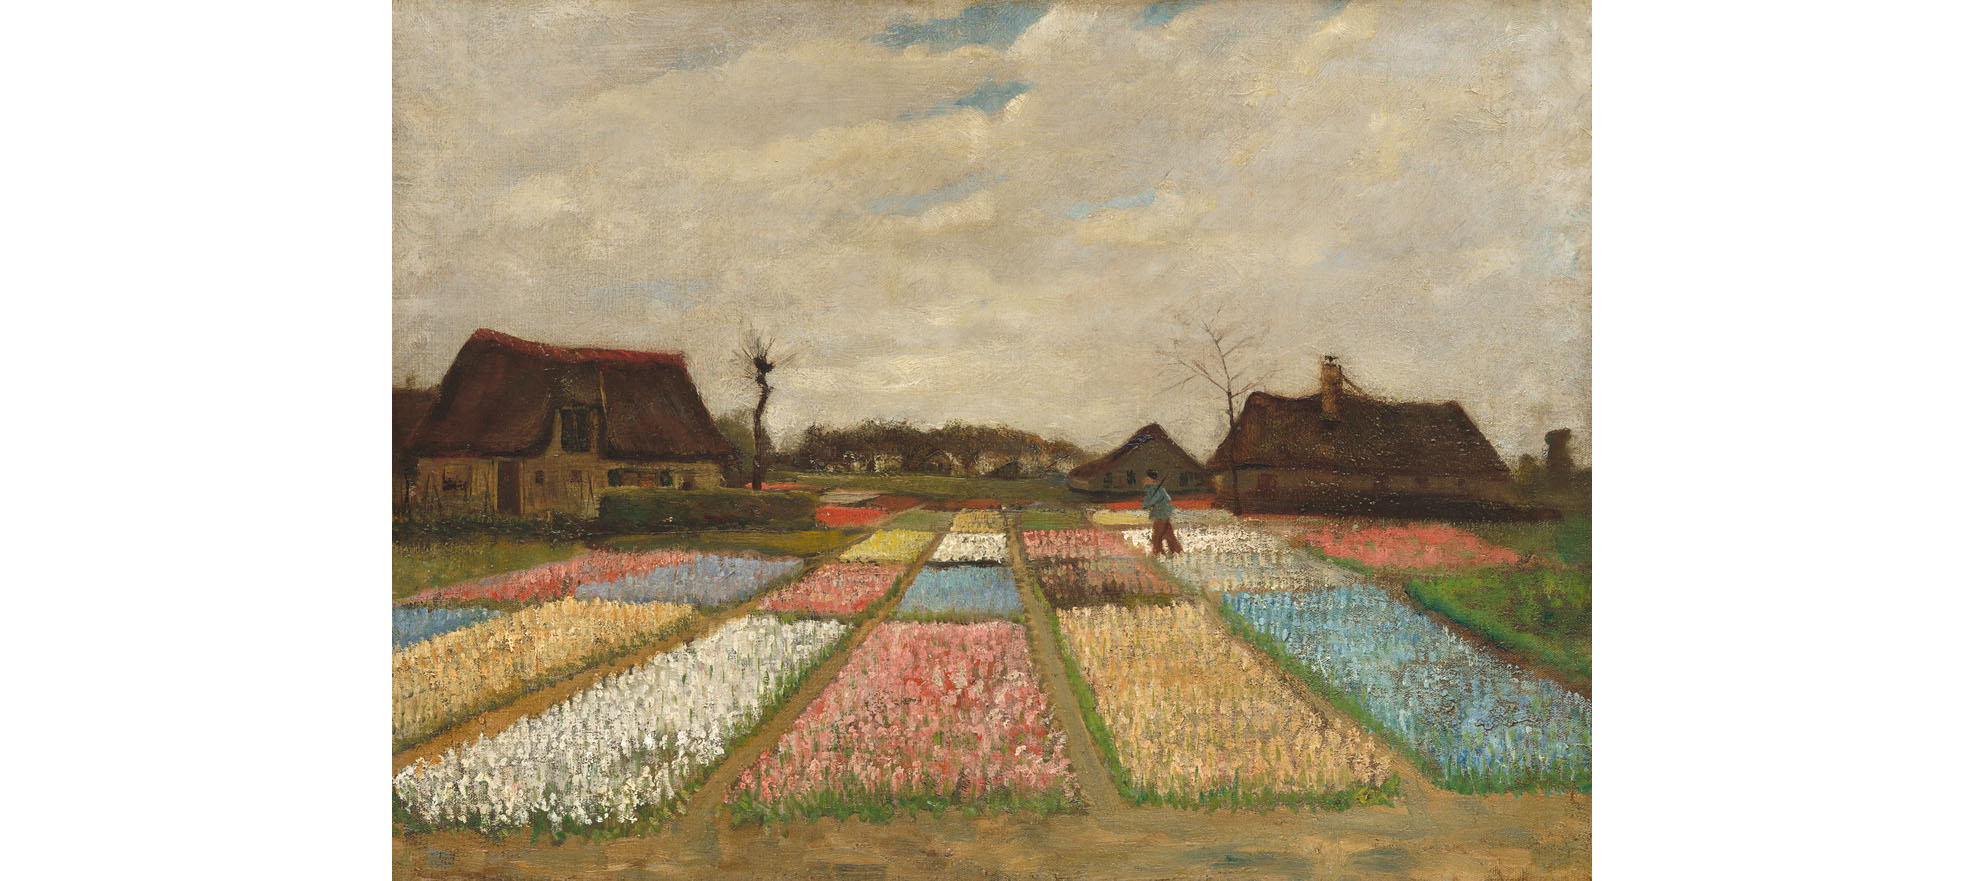 Flower Beds in Holland by Vincent Van Gogh c. 1883. National Gallery of Art